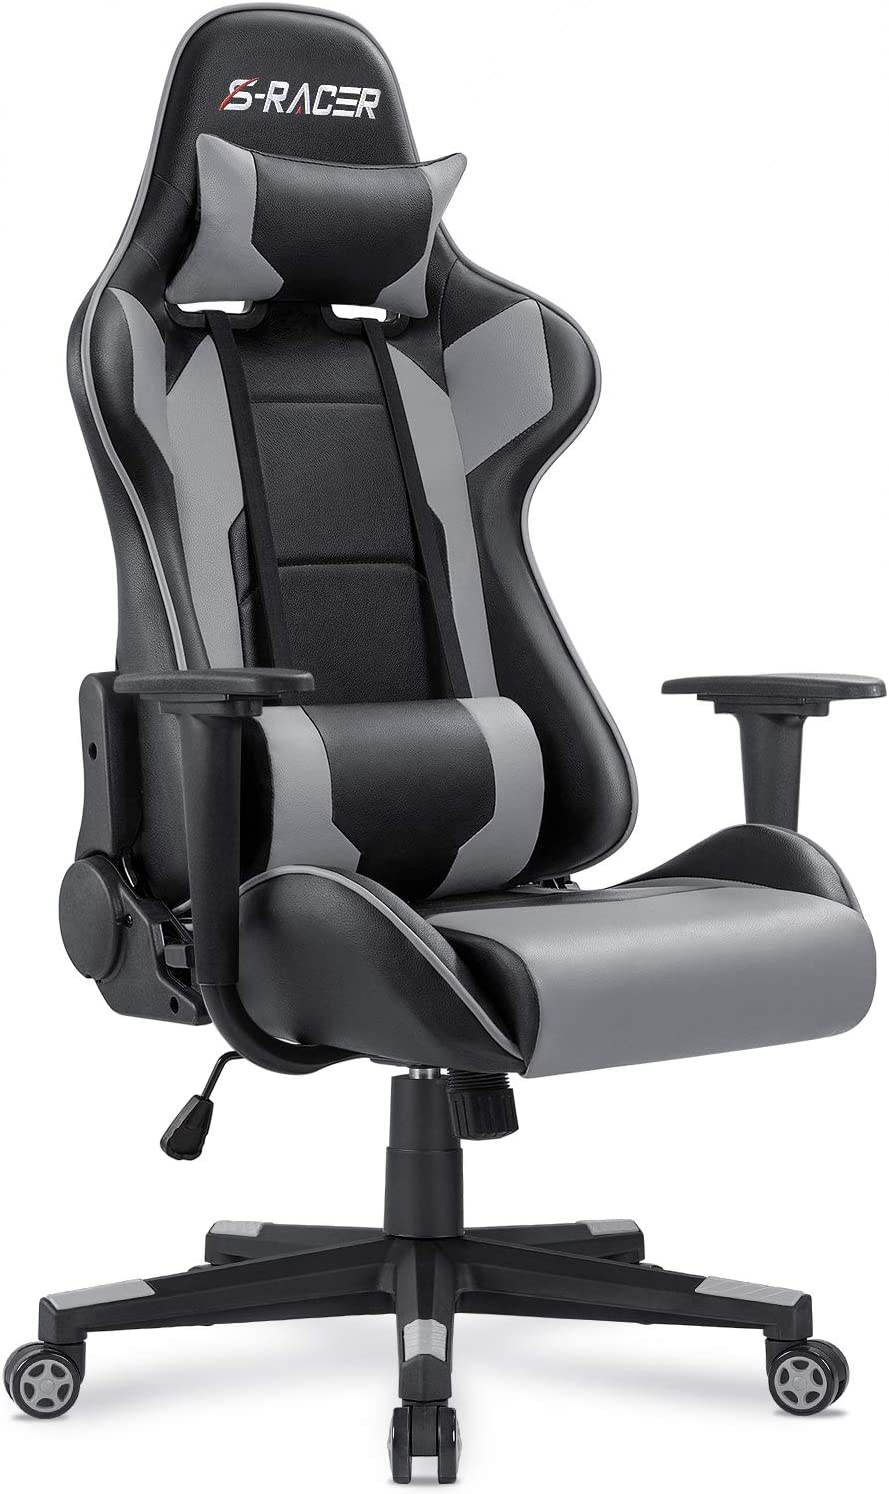 Homall Gaming Chair Office Chair High Back Computer Chair PU Leather Desk Chair PC Racing Executive Ergonomic Adjustable Swivel Task Chair with Headrest and Lumbar Support (Gray)